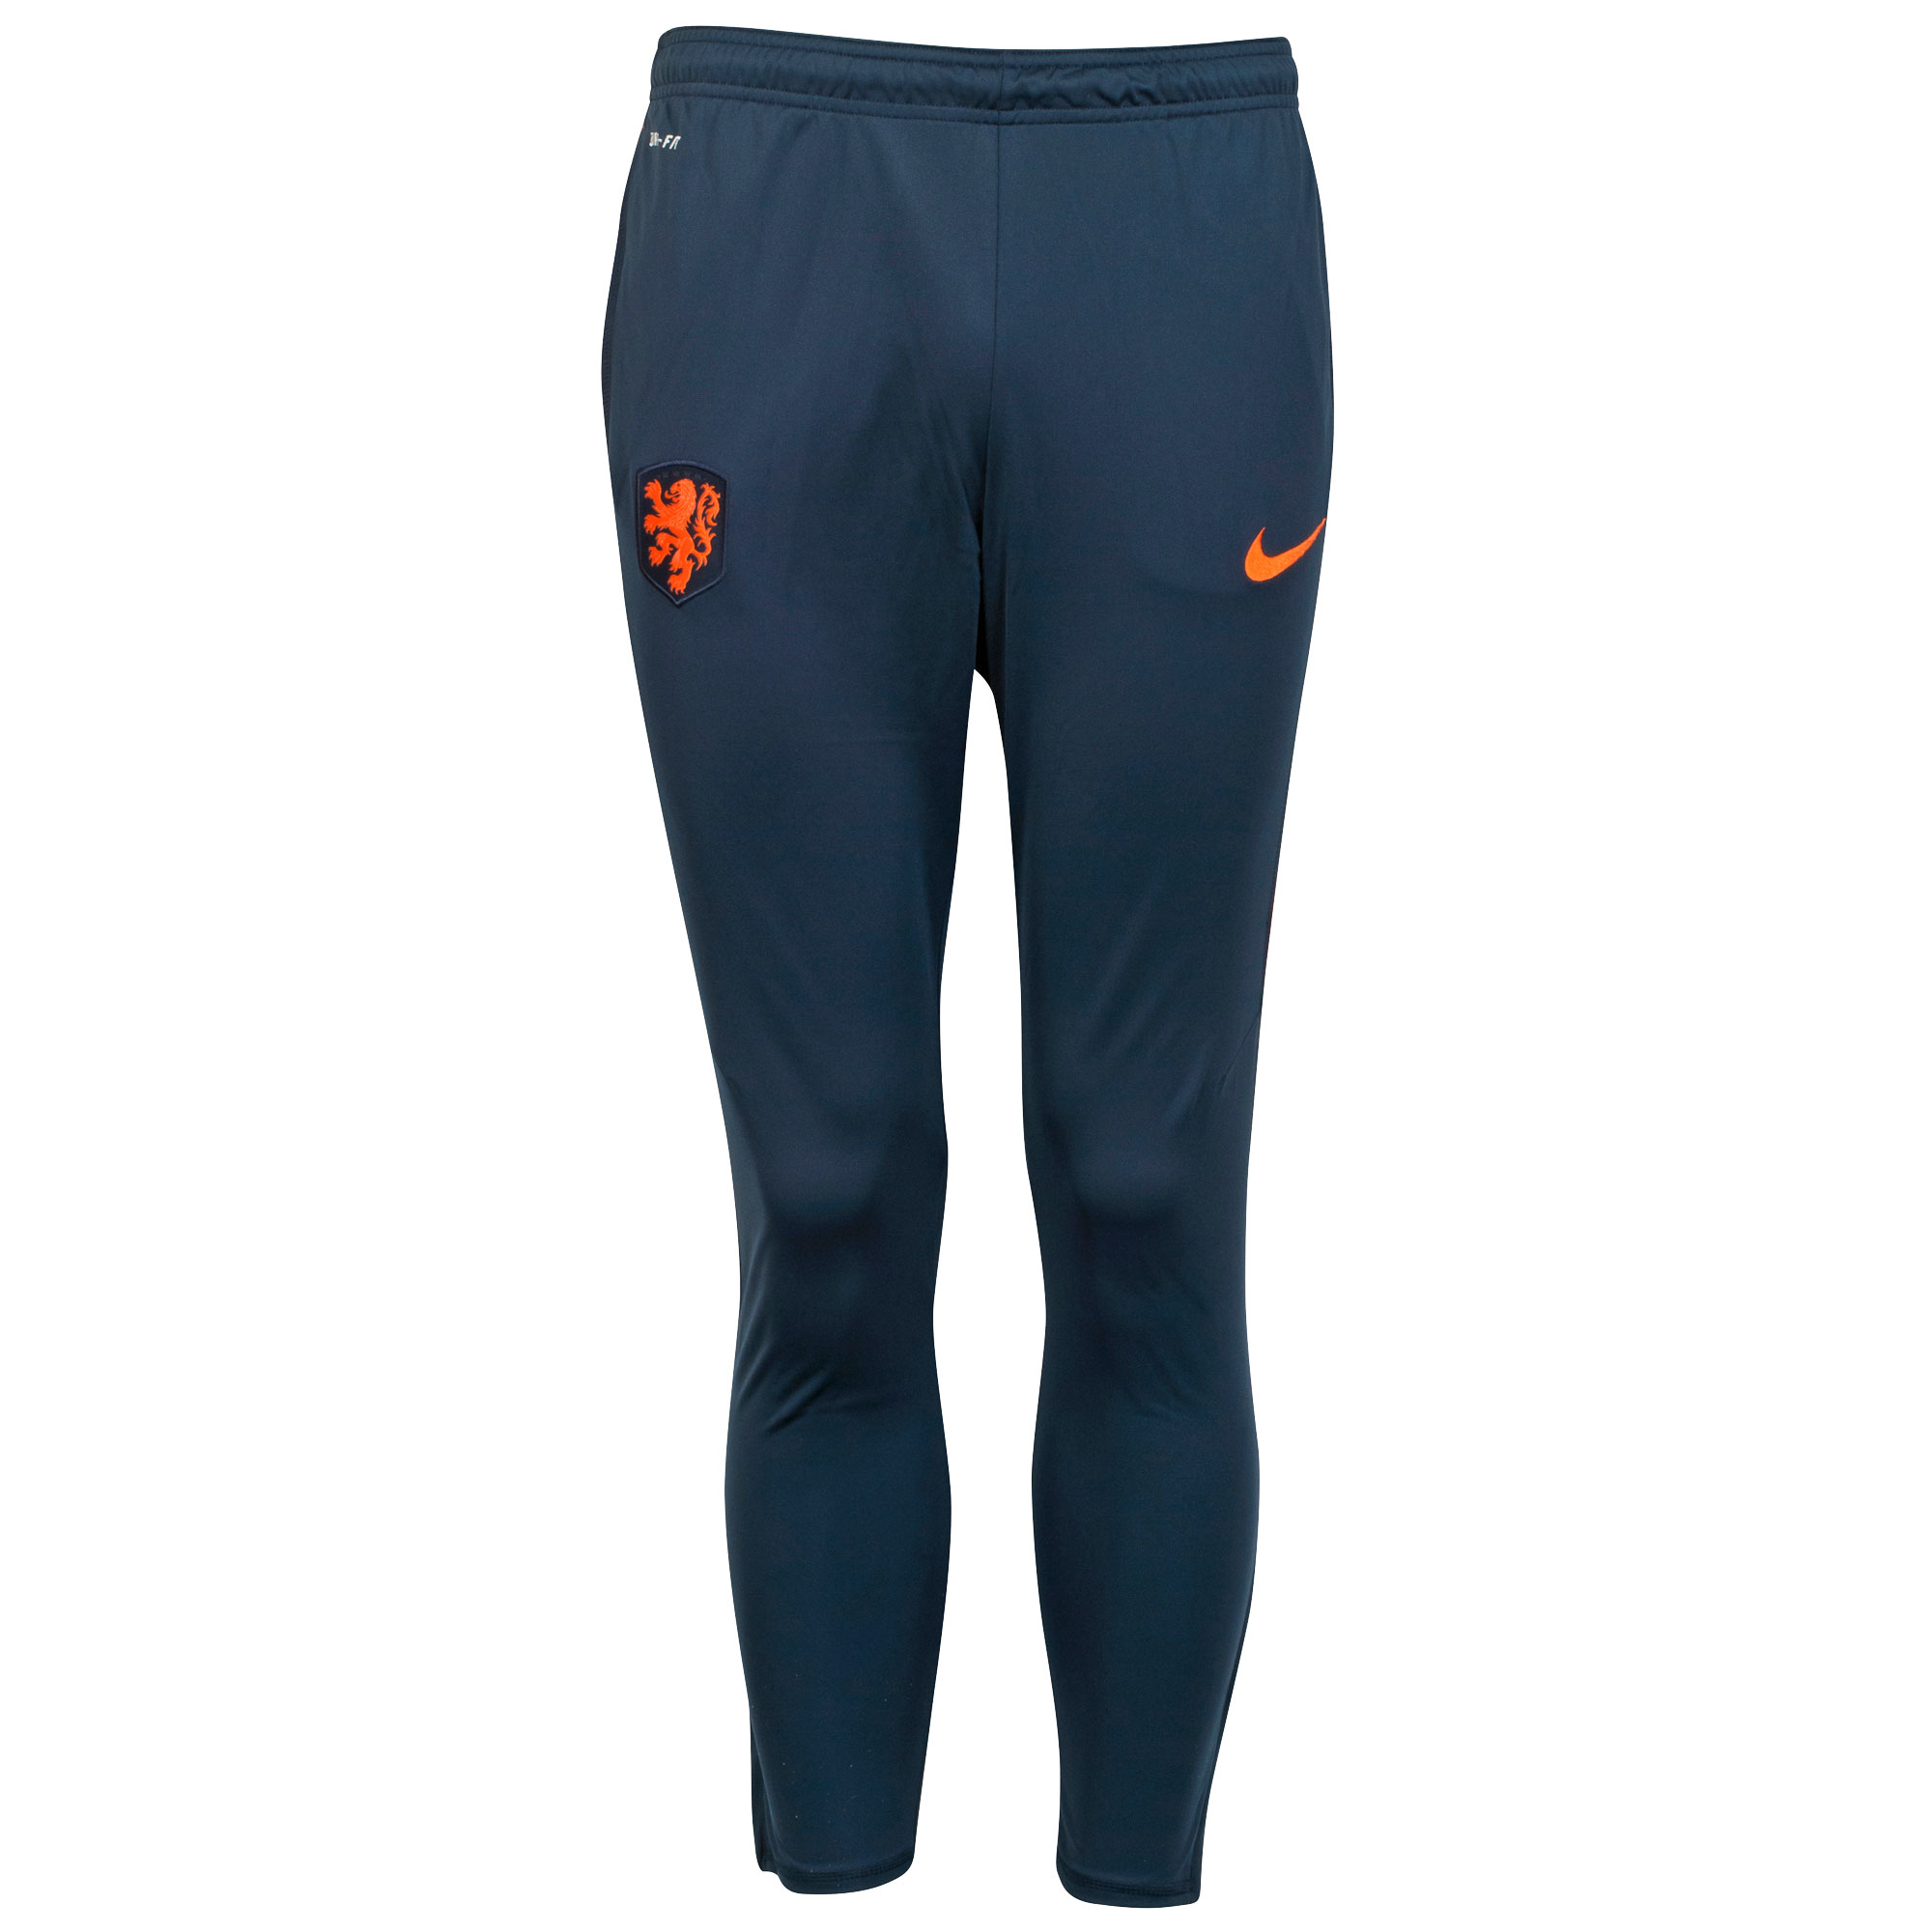 Holland TECH Training Pants 2016 / 2017 - Navy/Orange - XXL